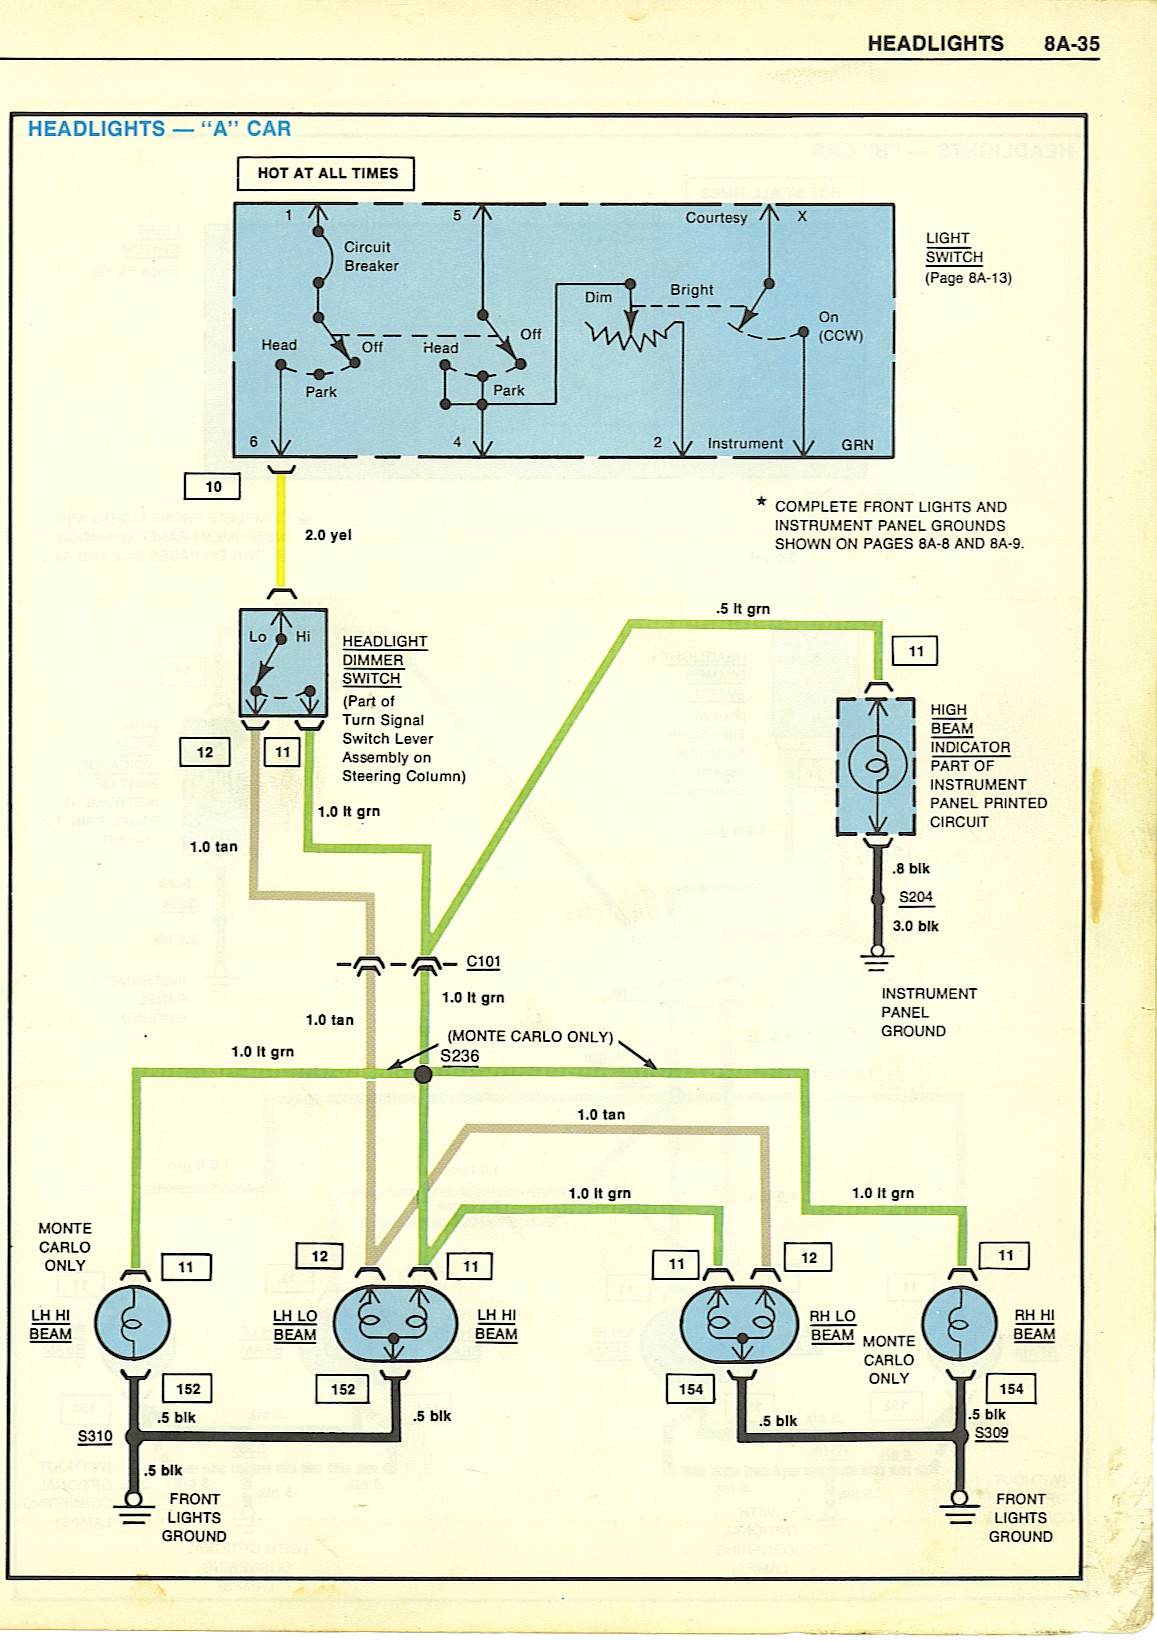 3 wire kenworth headlight harness 33 wiring diagram  fisher minute mount 2 headlight wiring diagram